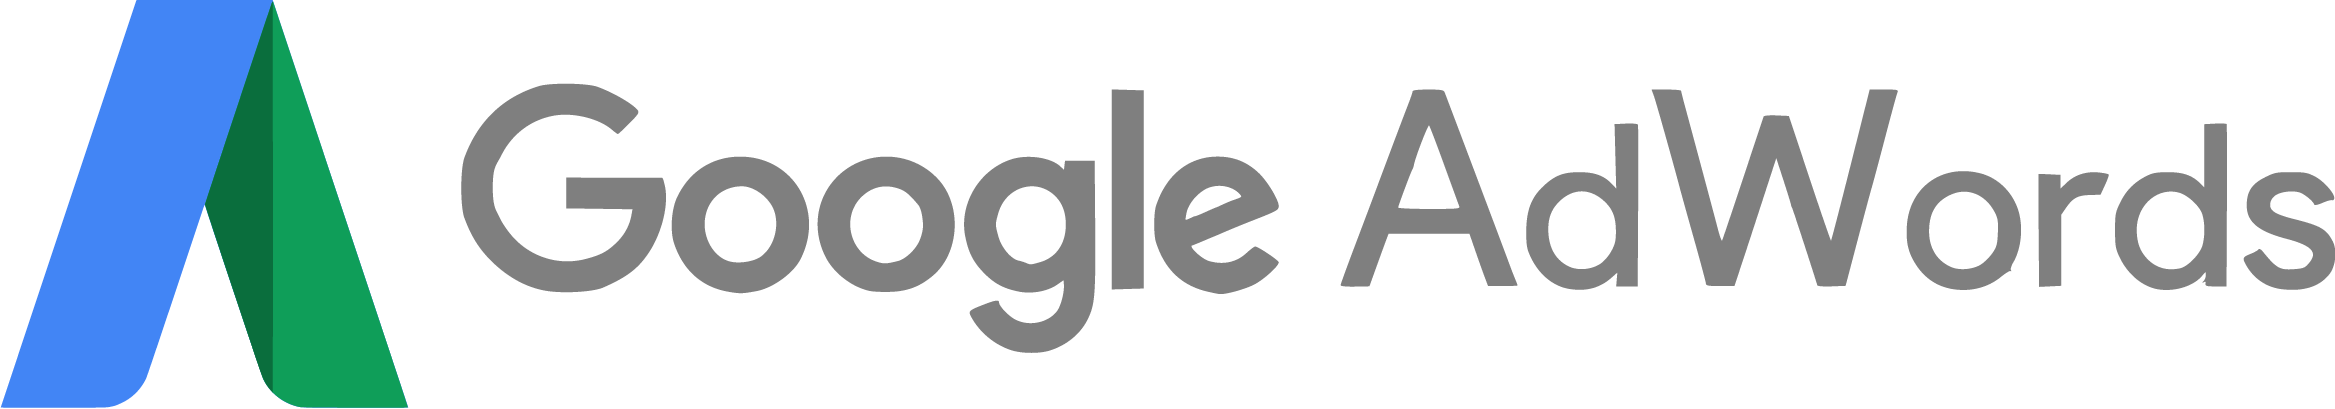 Posted on by yucel - Google Adwords Logo Vector PNG